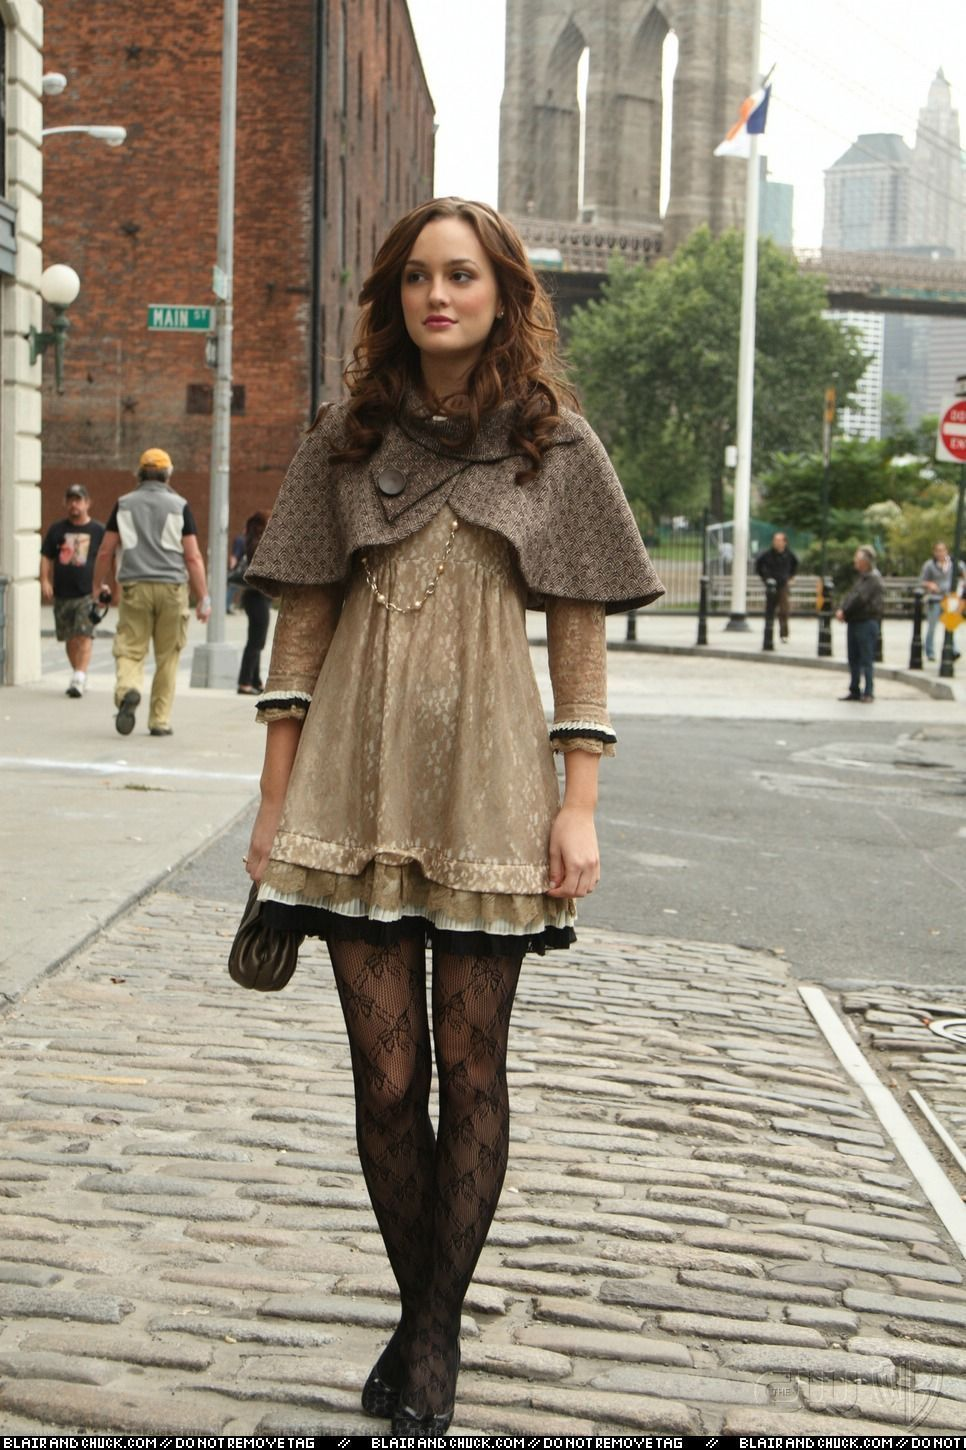 lovely gossip girl outfits : fine gossip girl outfits | lovely